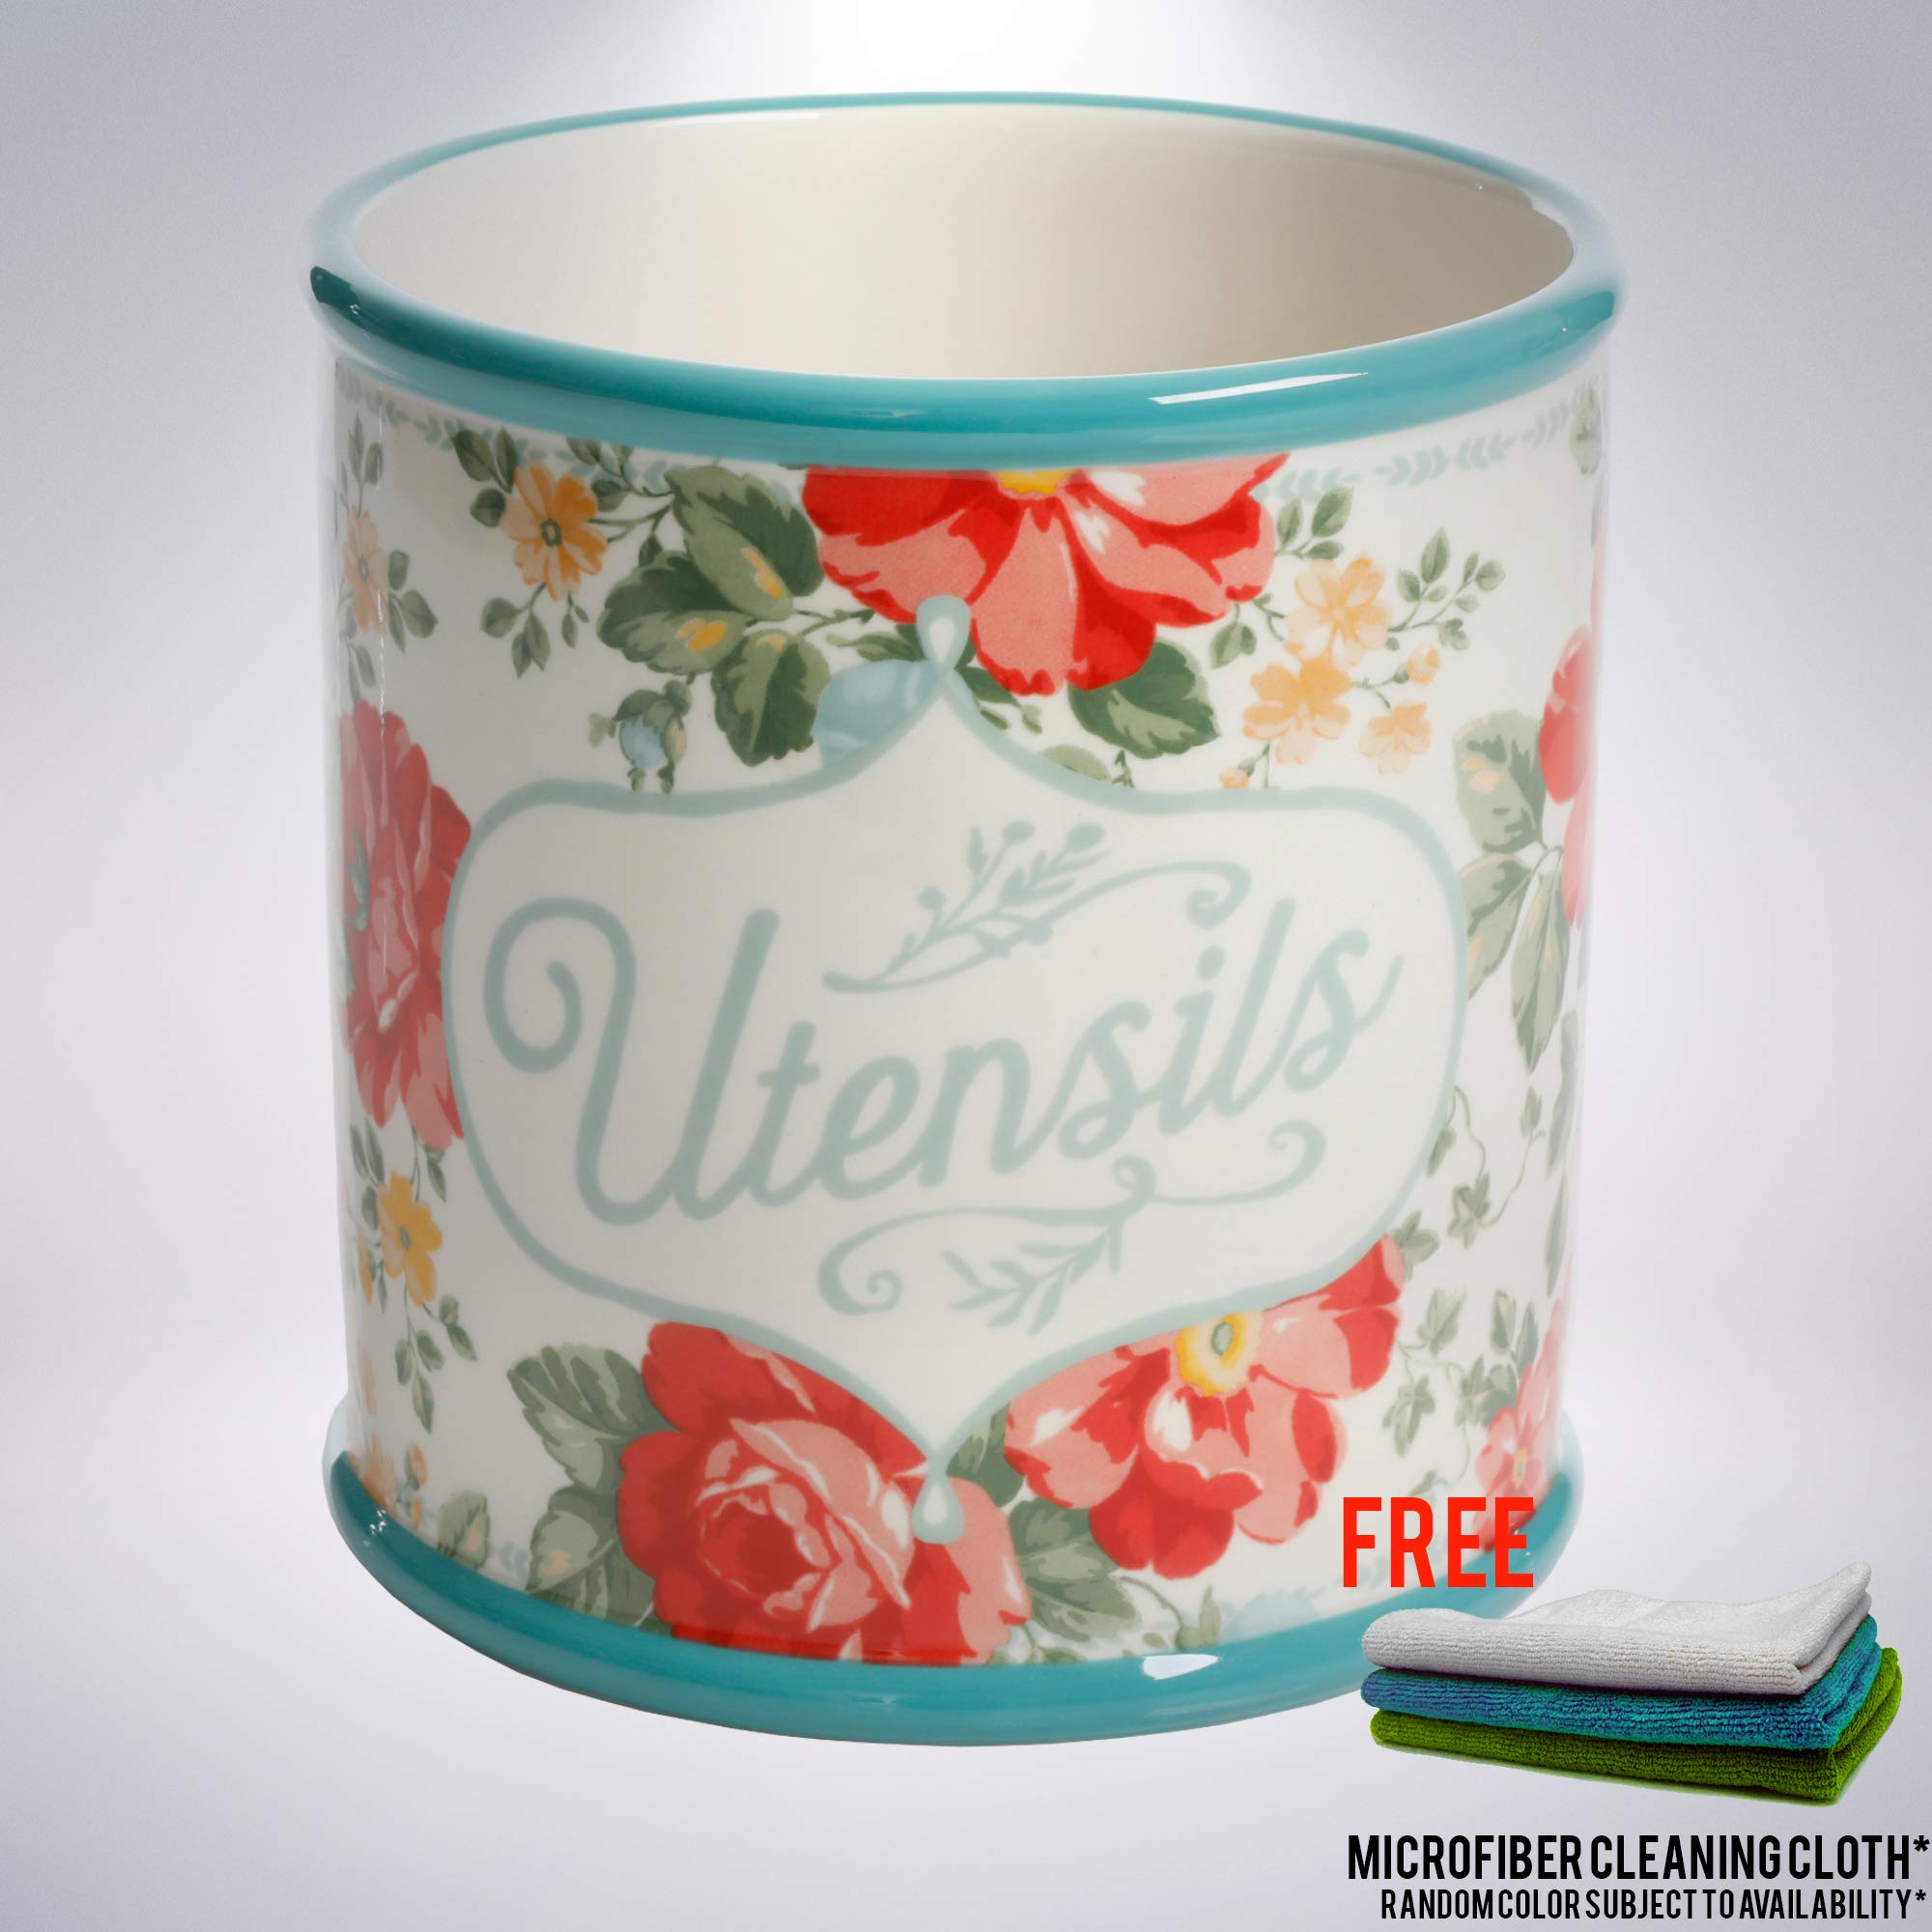 Vintage Floral Crock bundled with Free Microfiber Cleaning Cloth by Unknown